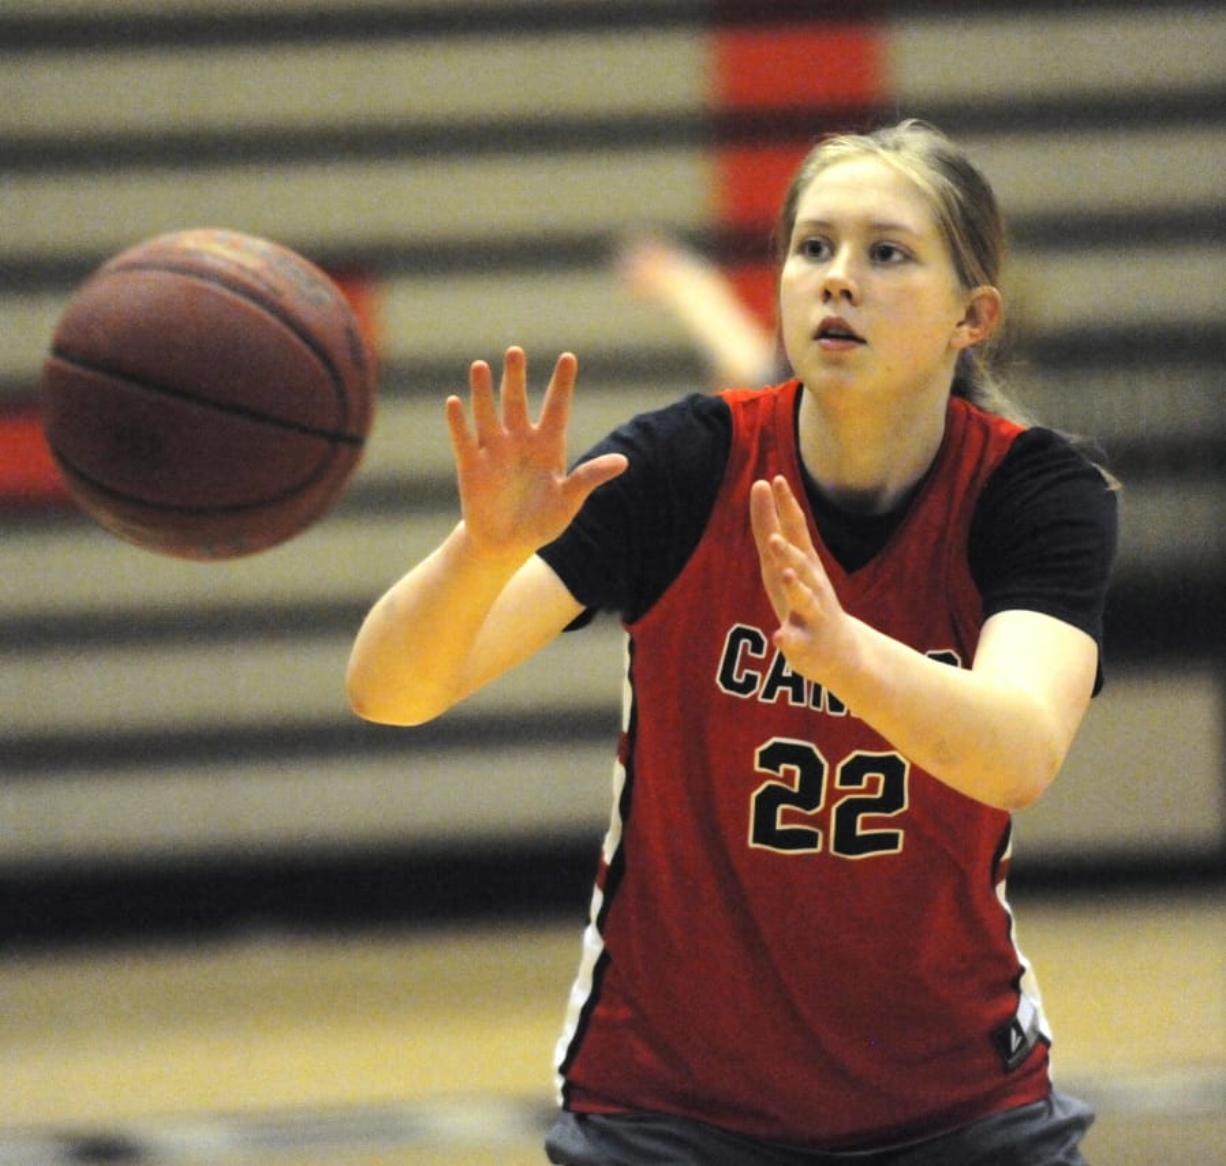 Camas senior Faith Bergstrom has made an oral commitment to continue her basketball career at Cal Poly in San Luis Obispo, Calif.